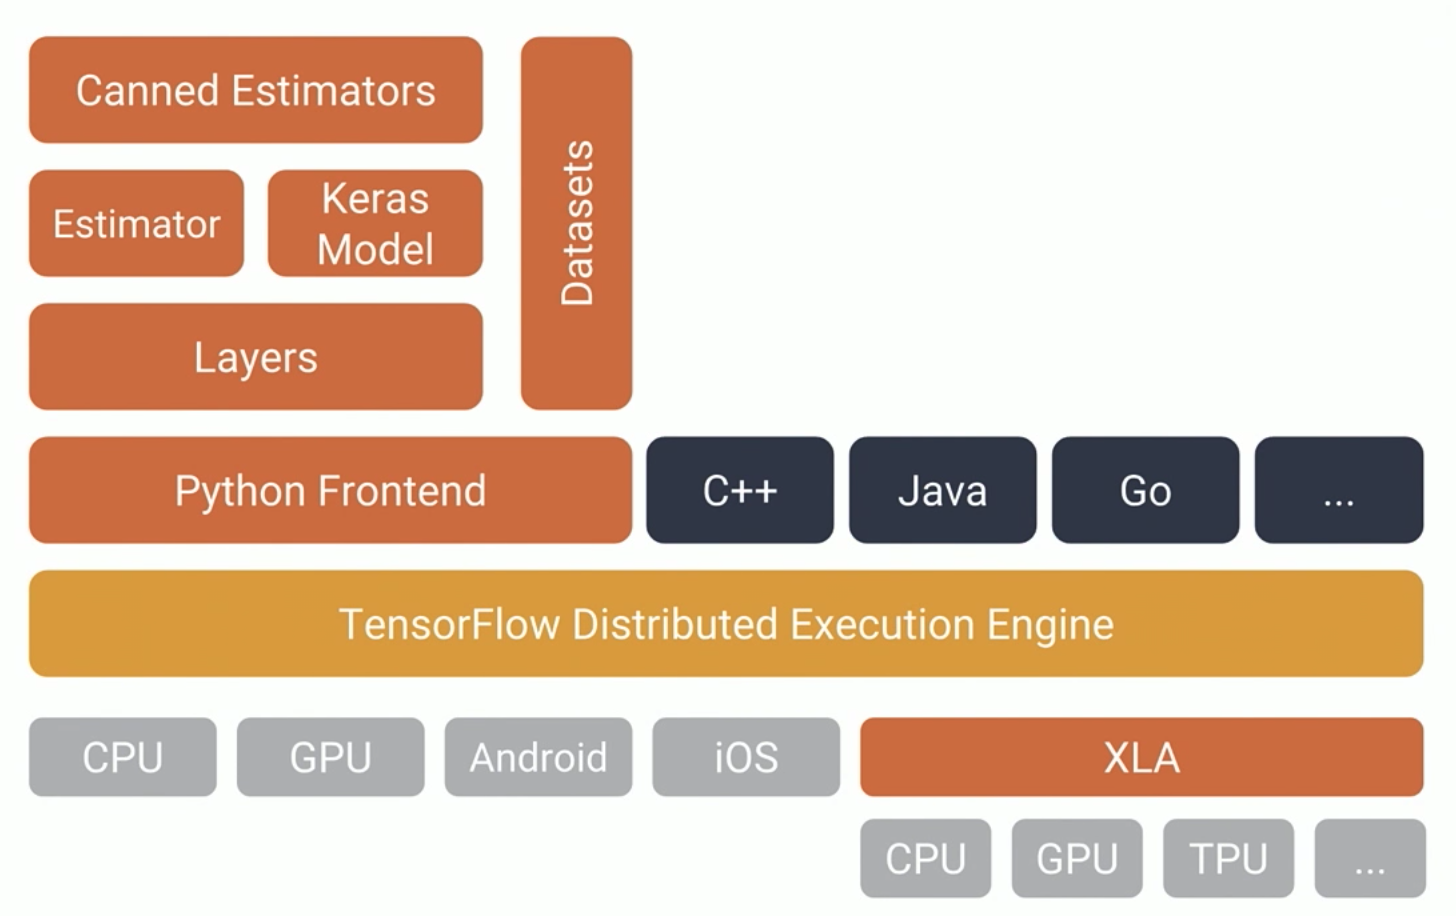 More and Better: The New TensorFlow APIs